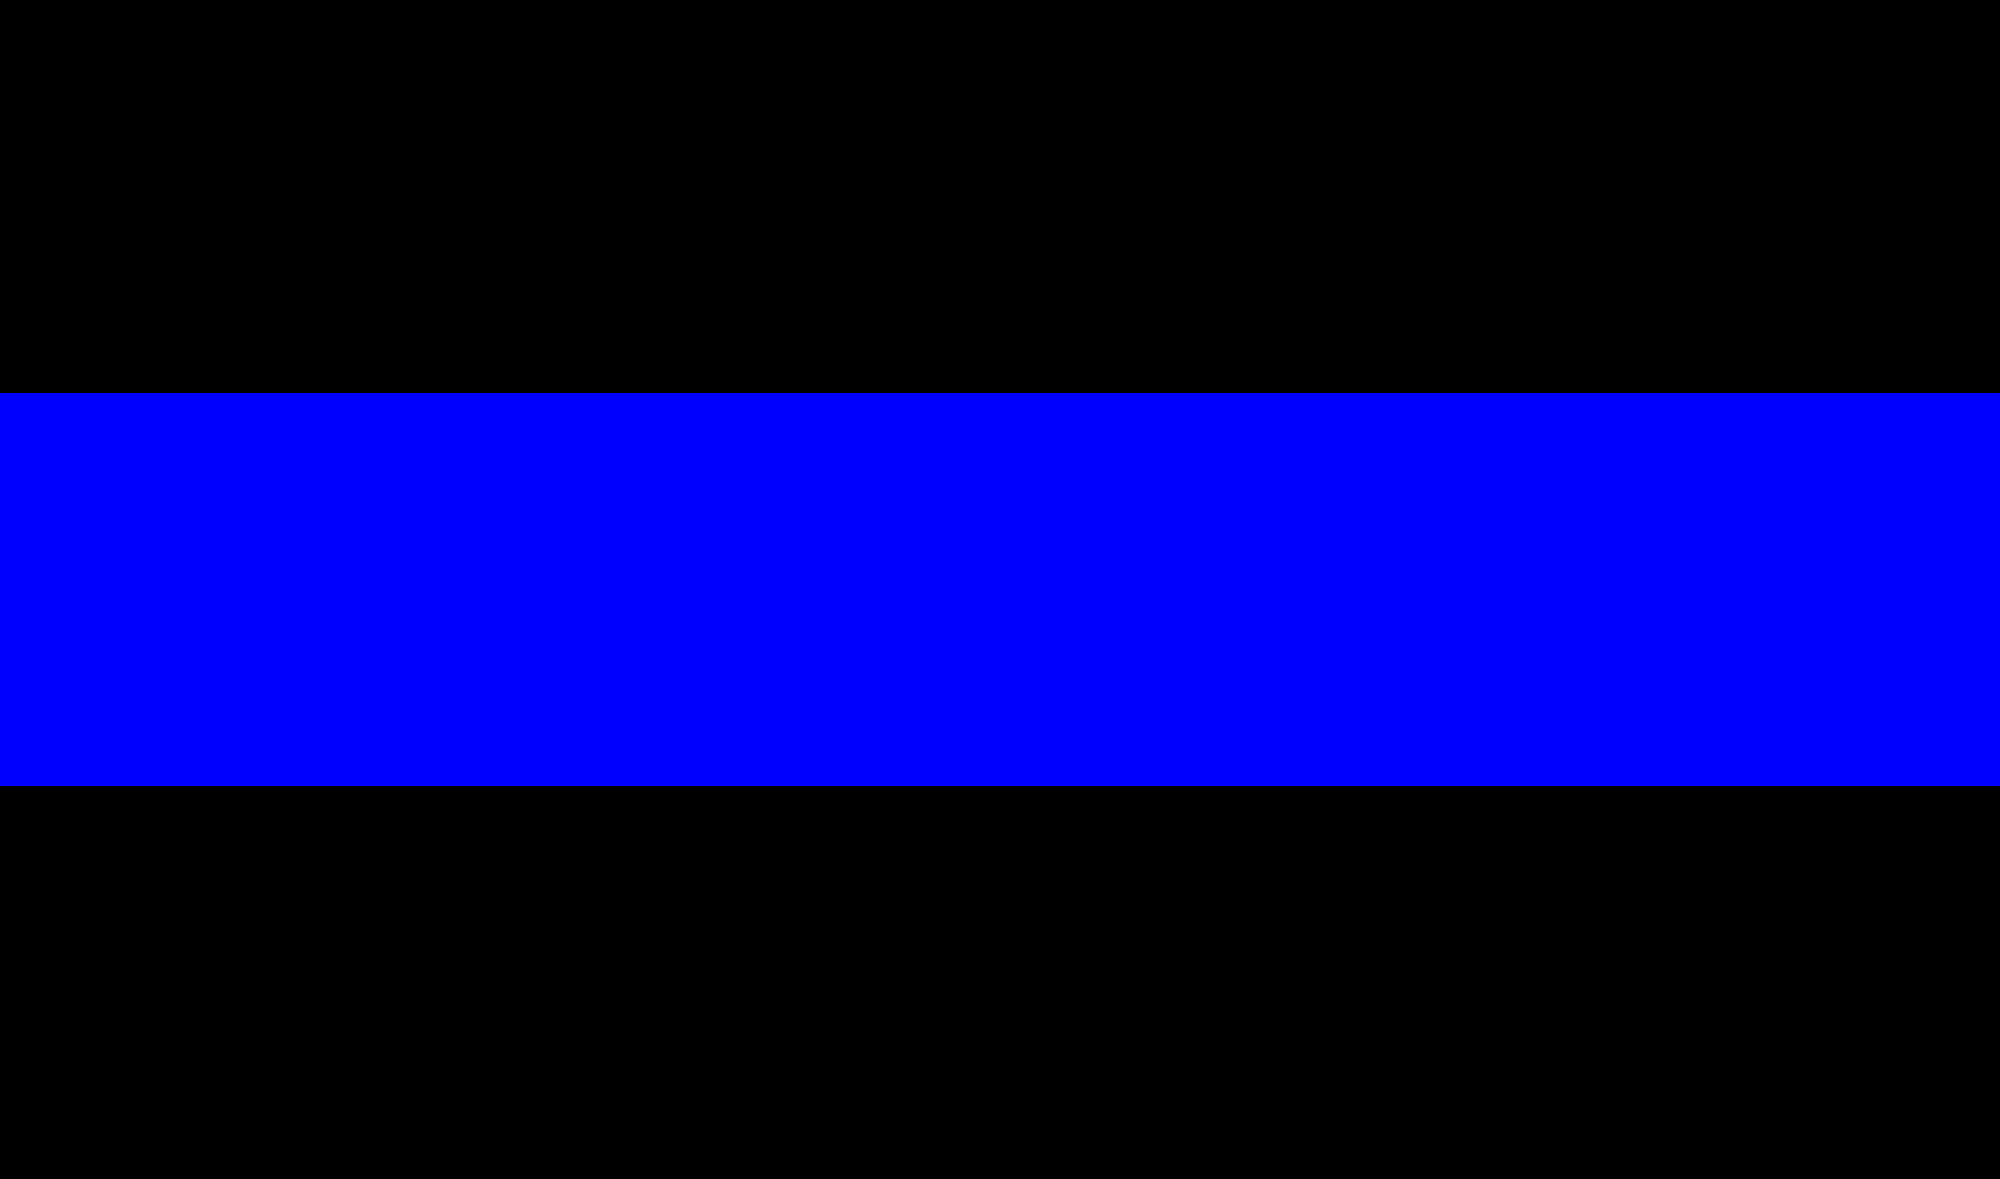 The Thin Blue Line emblem